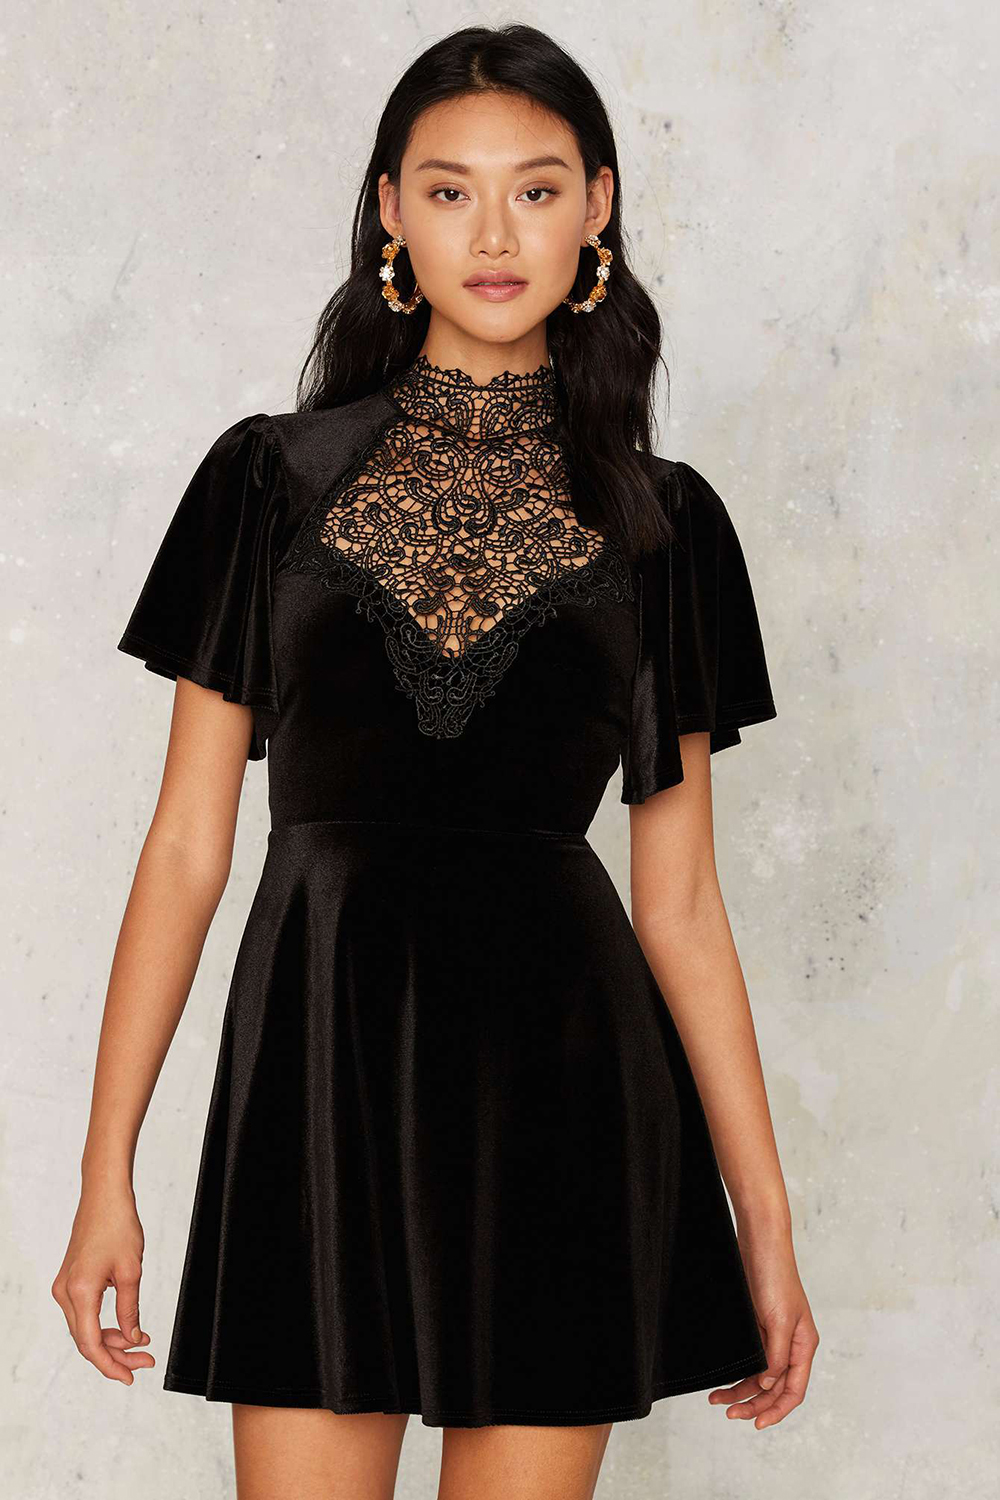 Nasty Gal Kids in America Mini Dress - Unwrap These 10 Holiday Dresses